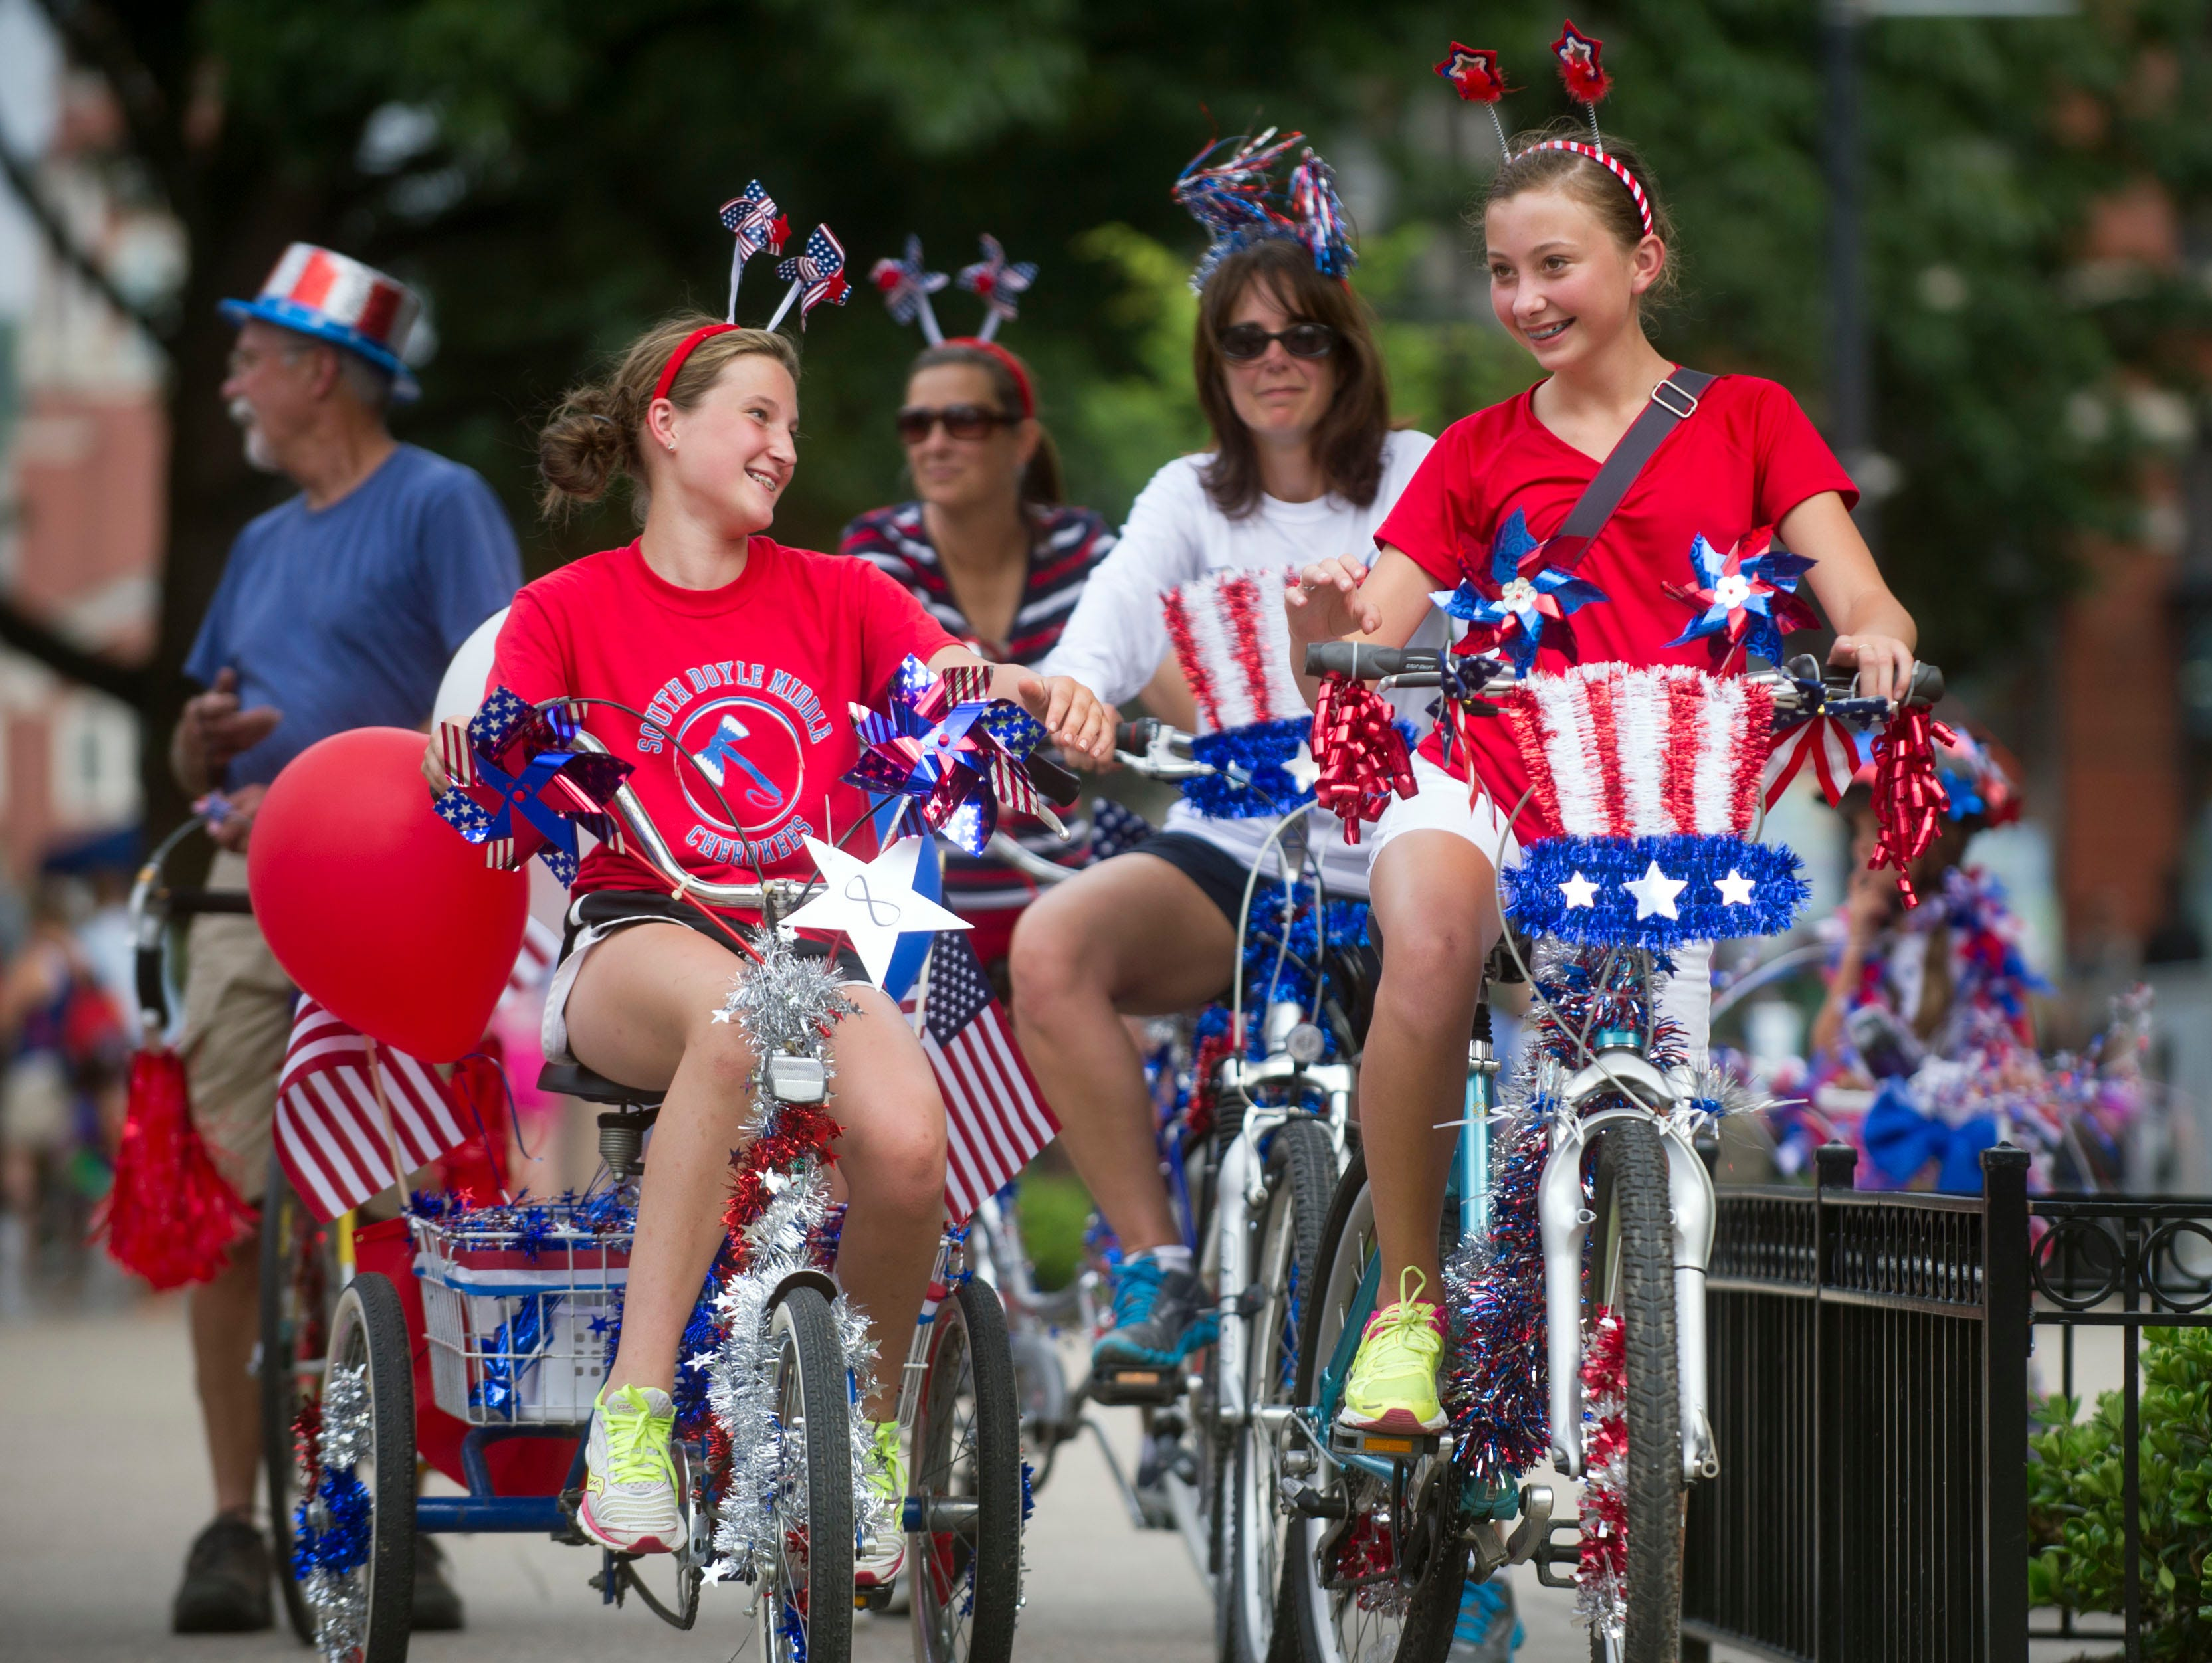 Olivia Snapp, foreground left, and Shelby Reynolds, right, wait to participate in the Patriotic Bike Parade at Market Square on Thursday, June 27, 2013. Also with them are, from background left, Mike Rule, Laura Snapp, and Kristi Reynolds. The Parade is one of the many events for the City of Knoxville's Festival on the Fourth celebration. 